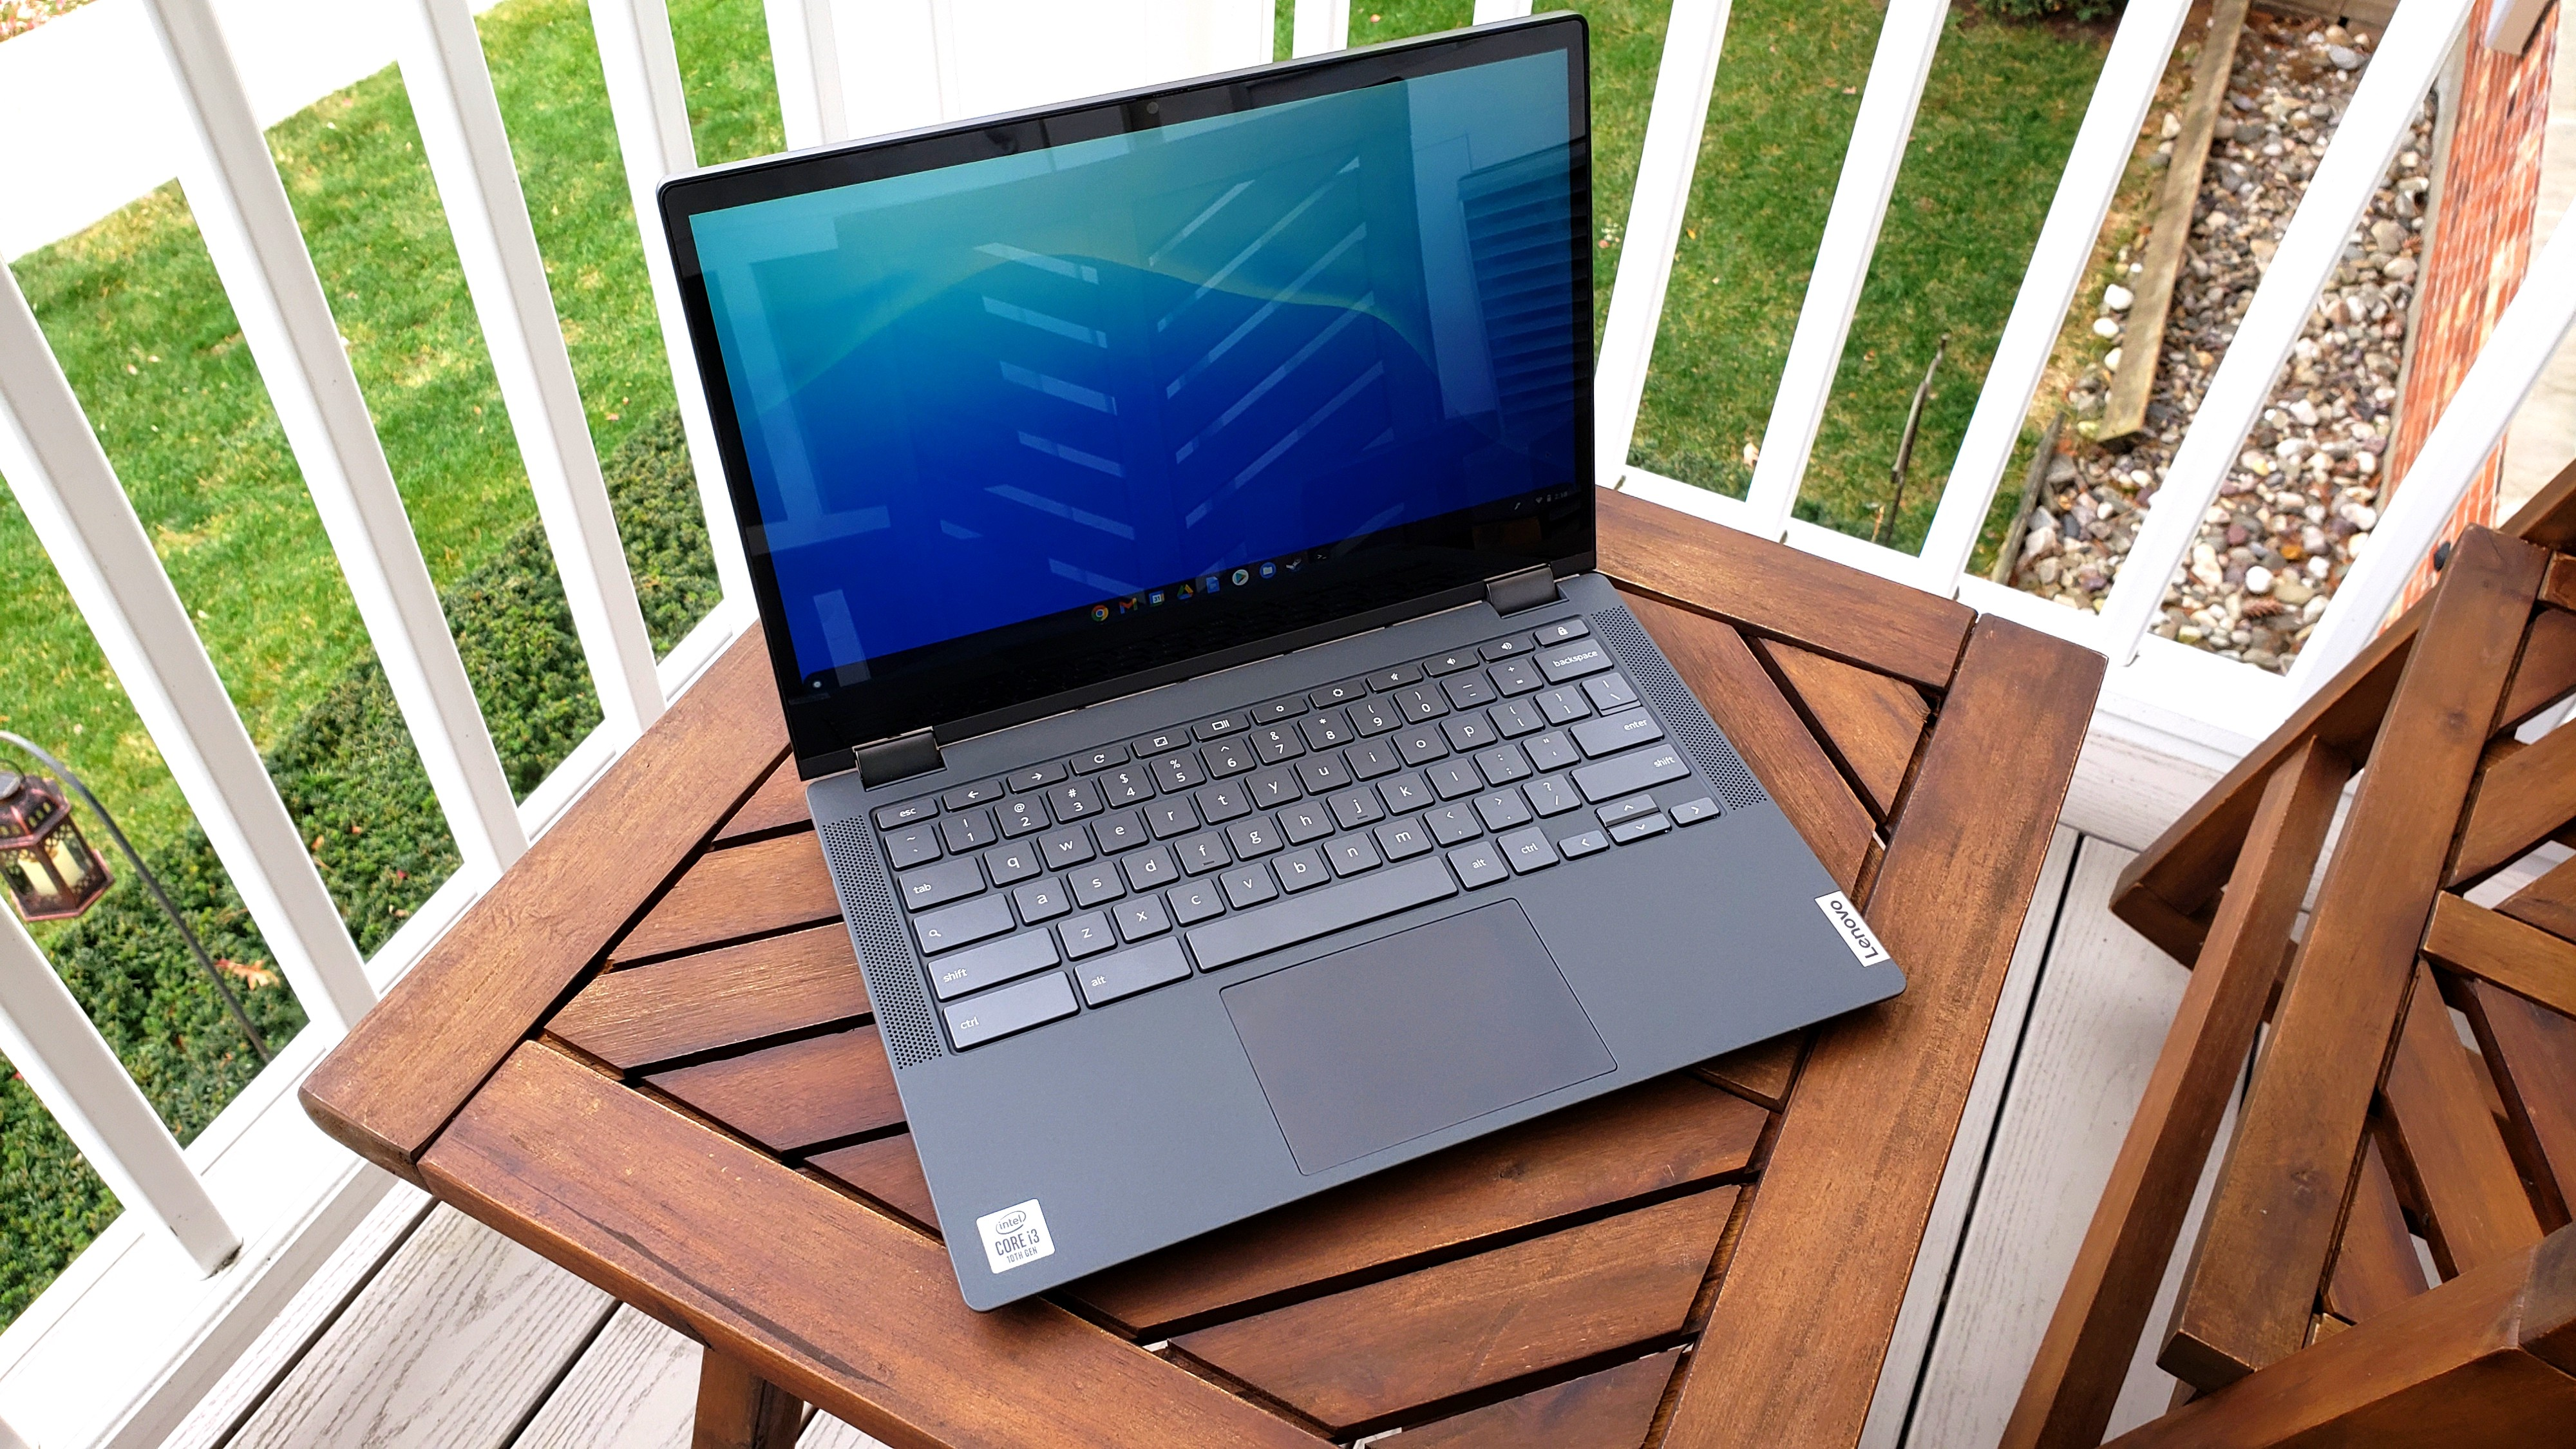 Lenovo Flex 5 Review What Can It Do Chrome O Xperts